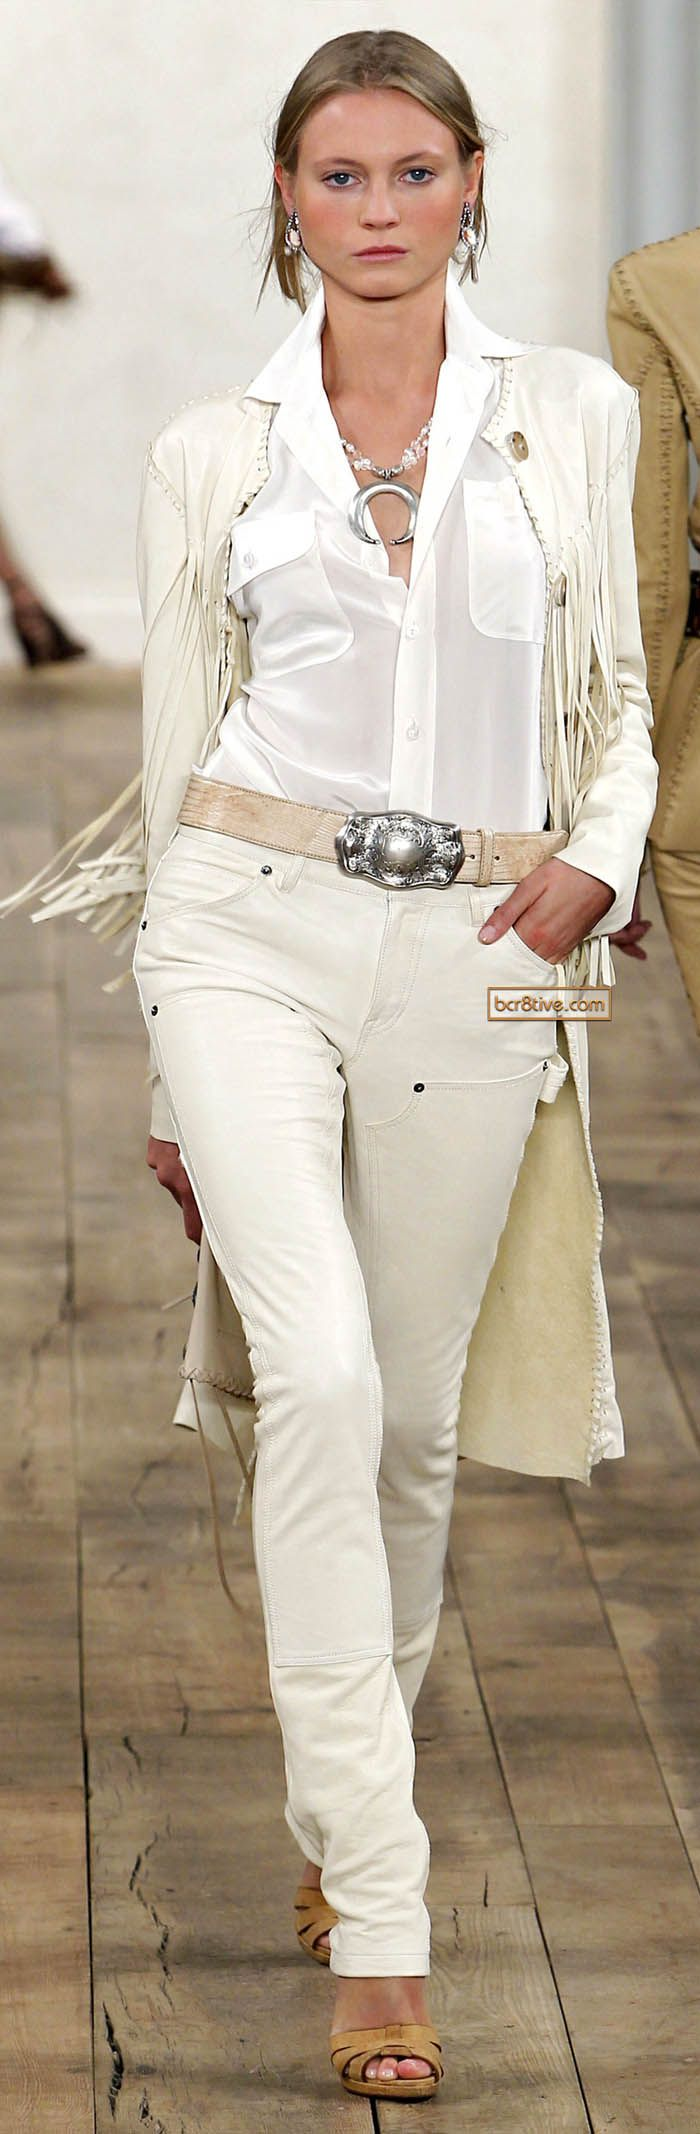 Fringes Shades Of White Boho Shirt Pants Jacket